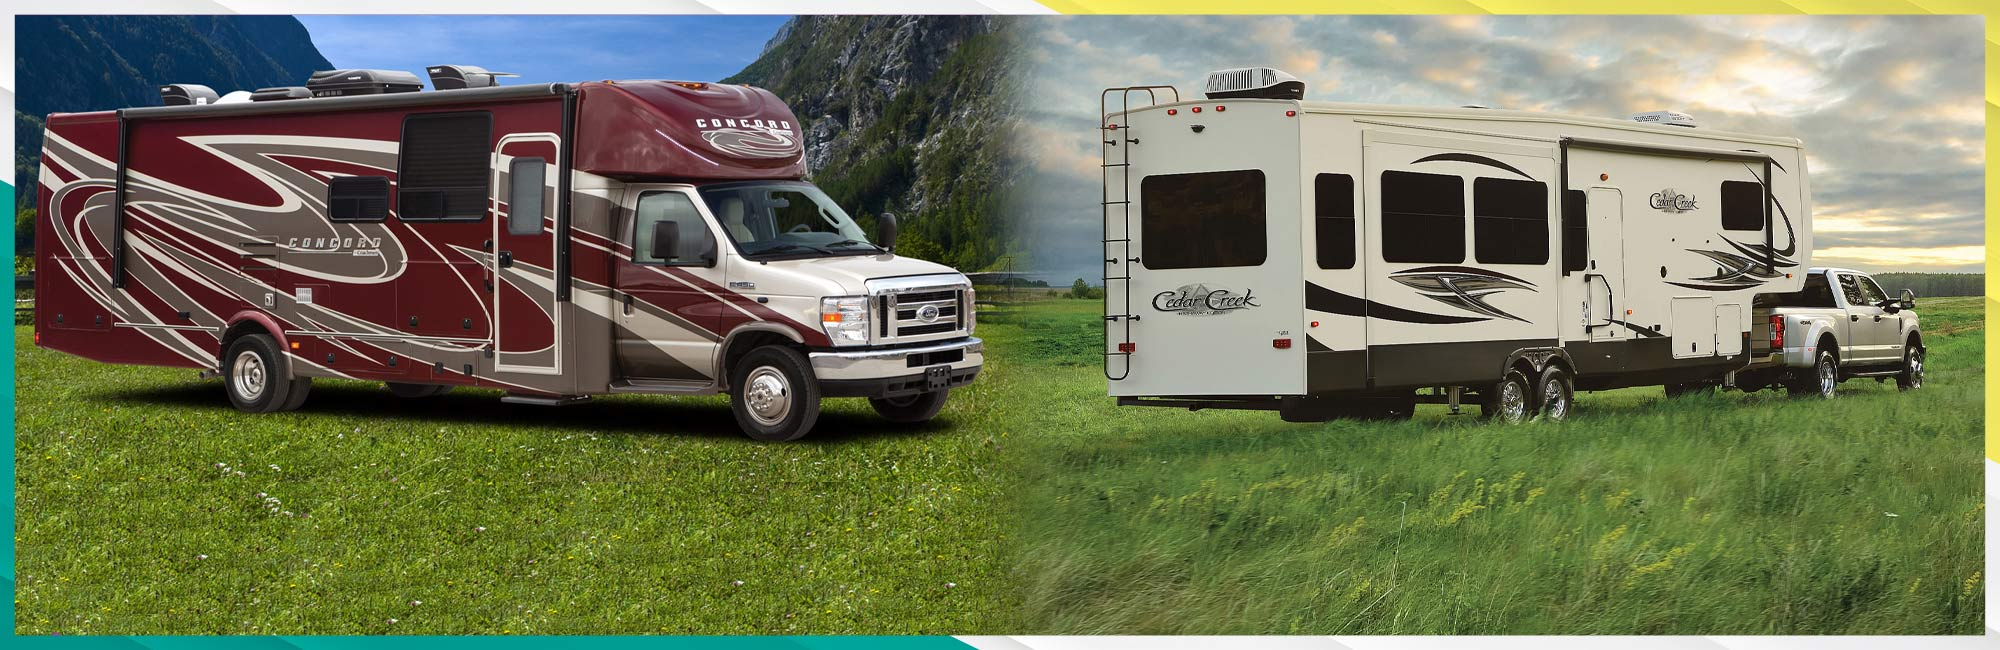 RVs With Bunk Beds For Sale